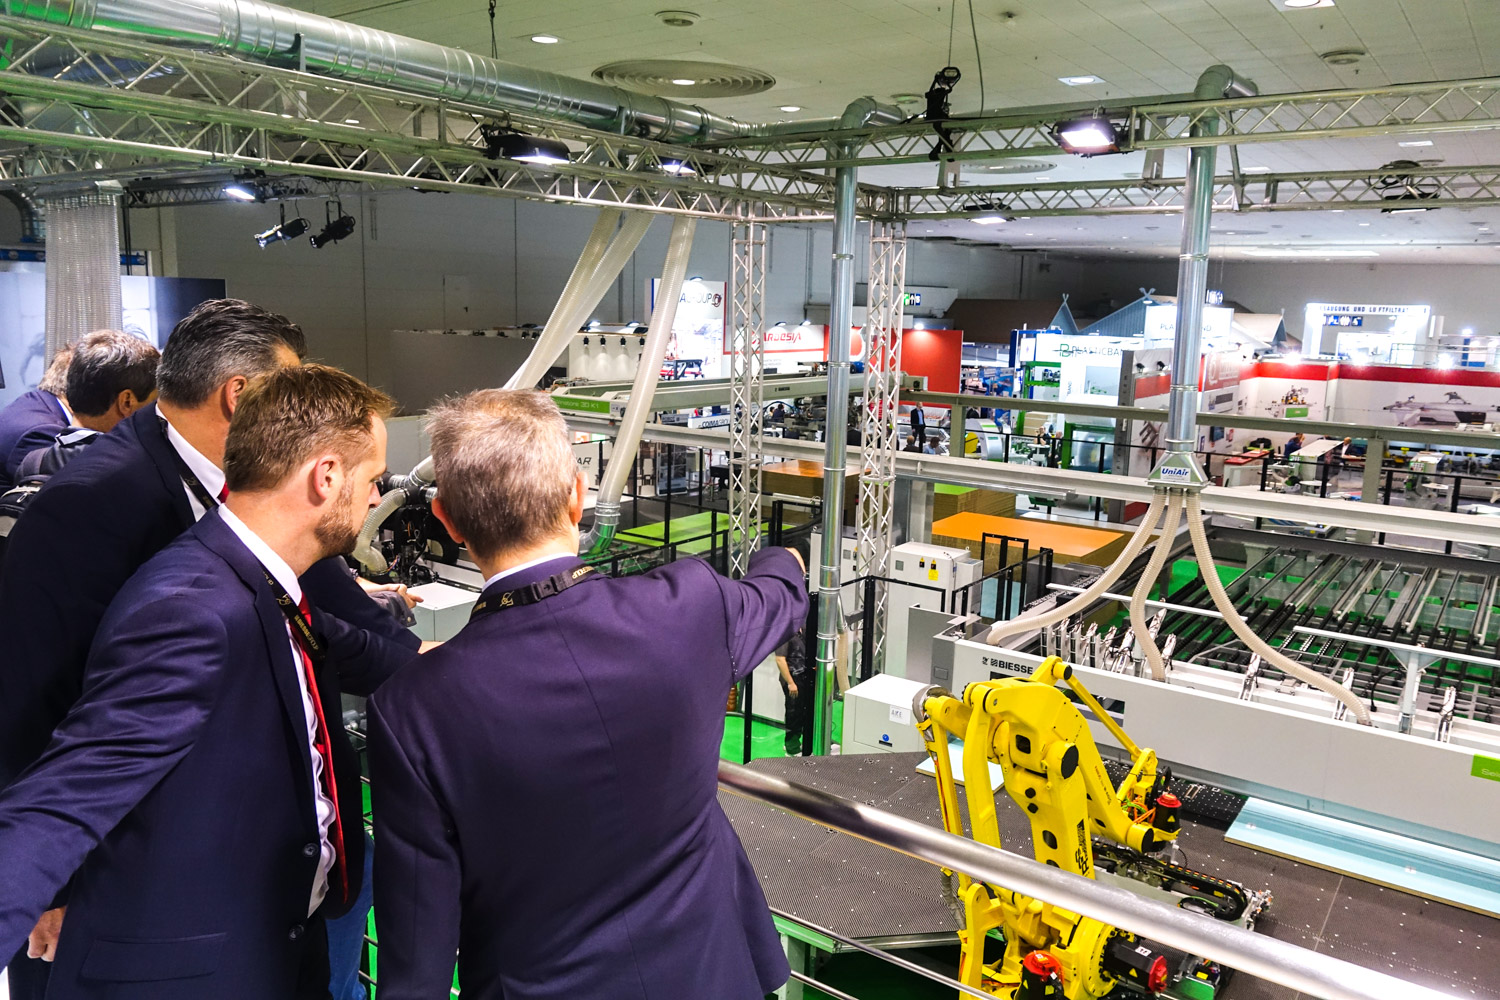 Biesse showcases groundbreaking technologies for small- to large-scale enterprises